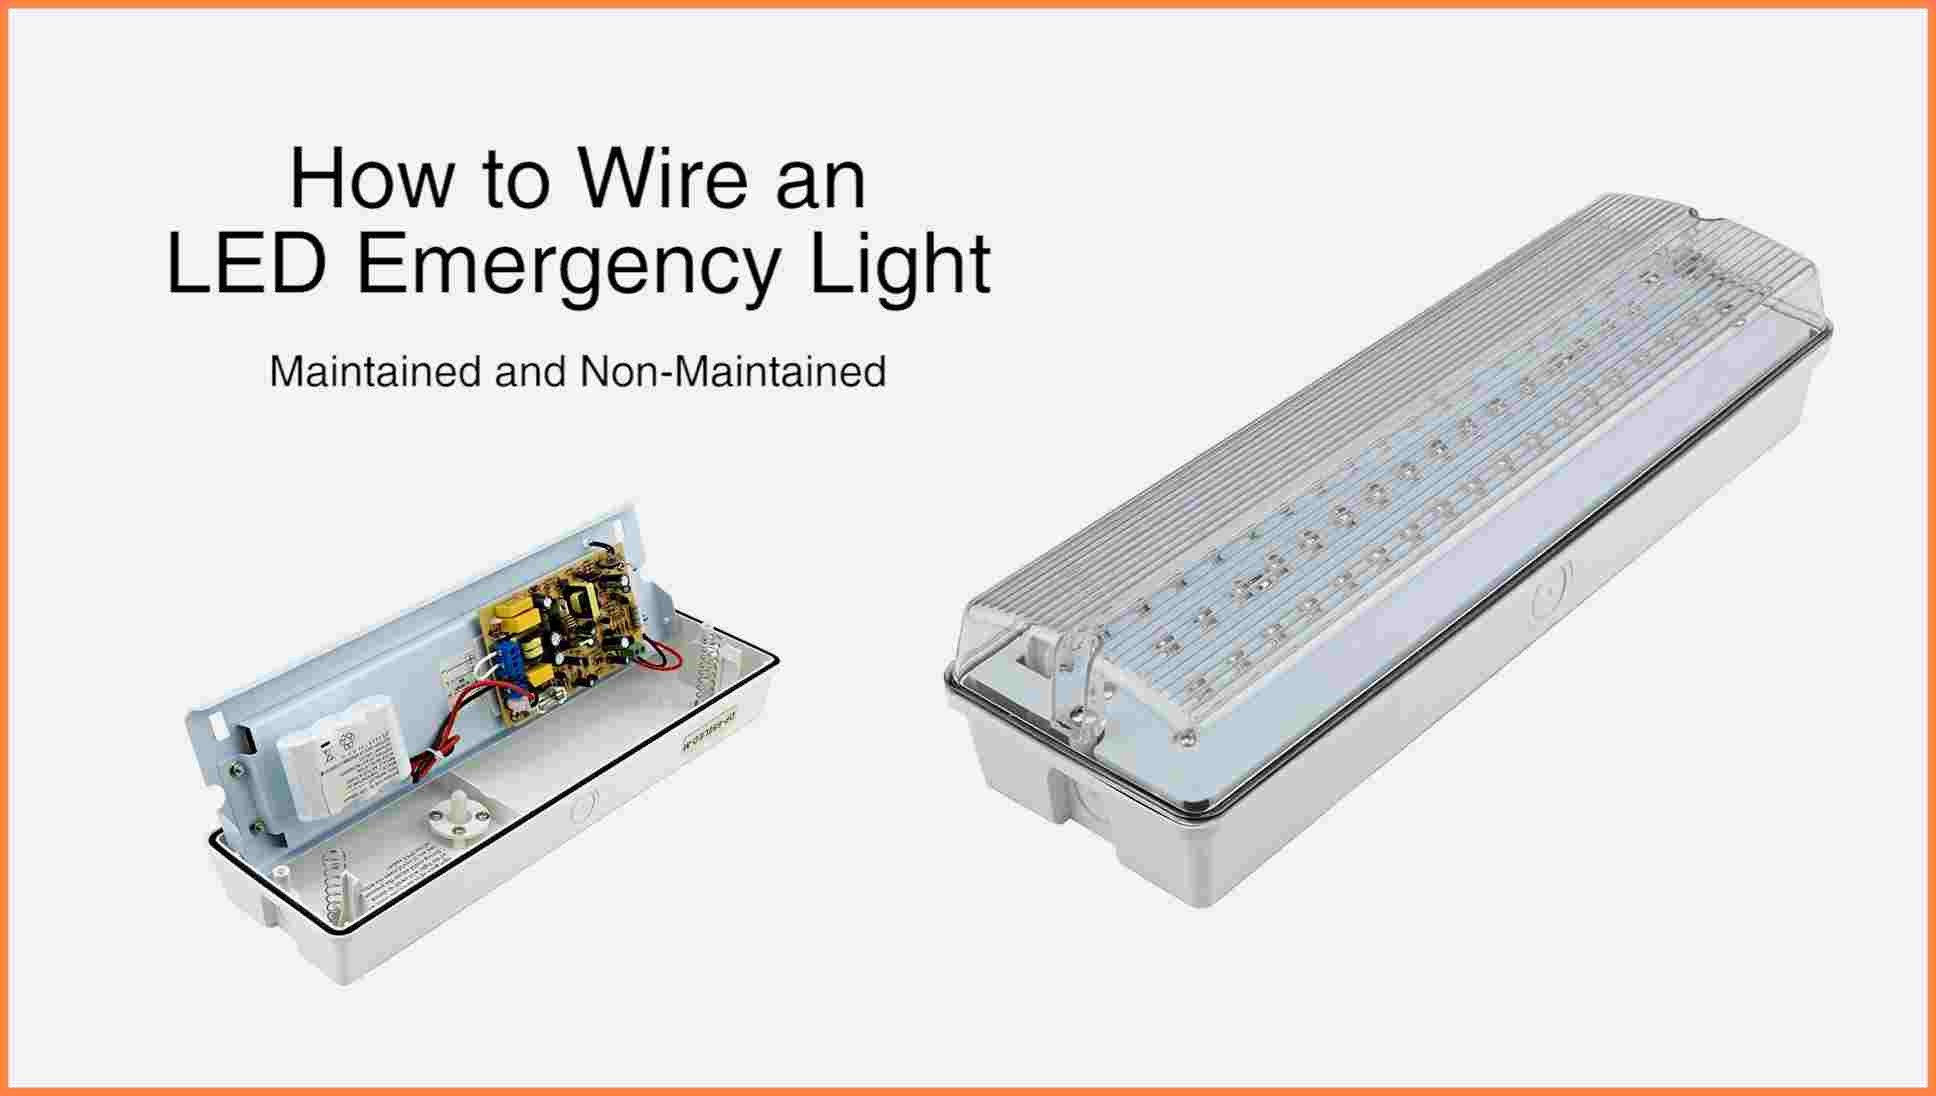 Emergency Exit Light Wiring Diagram from static-cdn.imageservice.cloud